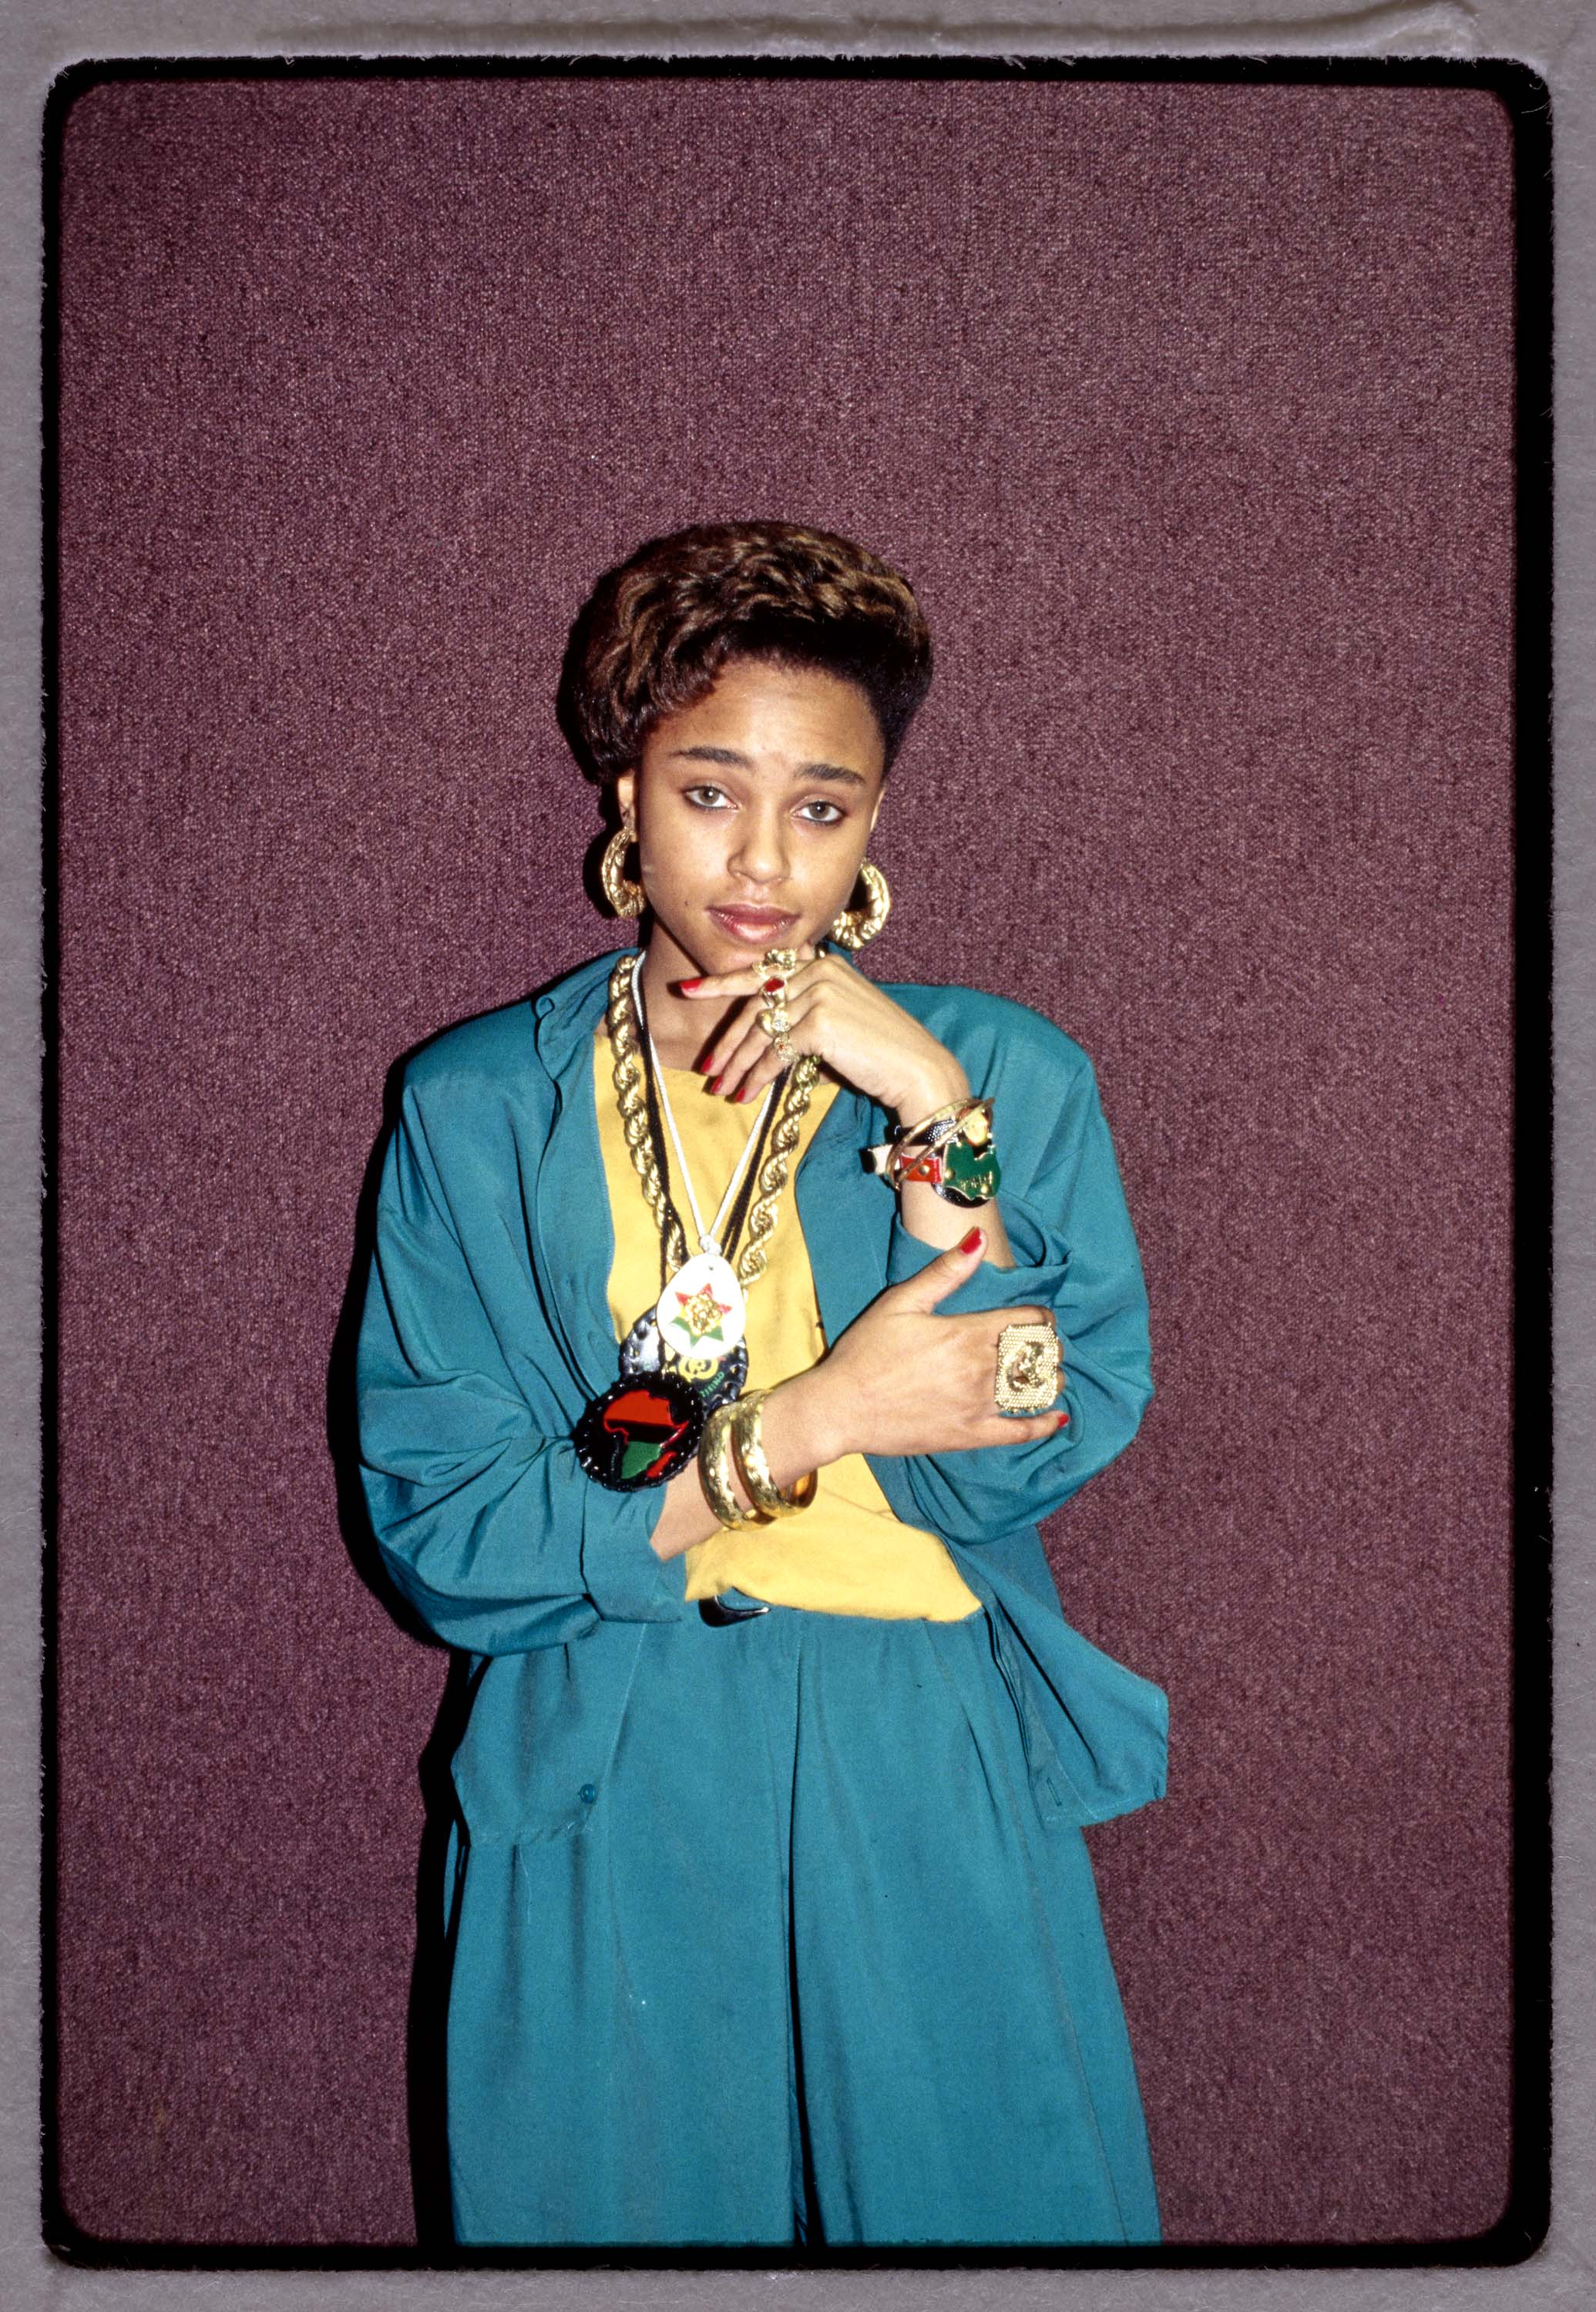 A young woman in a teal jacket and pants with a yellow shirt leans against a dark red backdrop. She has her left hand resting under her chin. She wears large gold earrings and a prominent necklace.